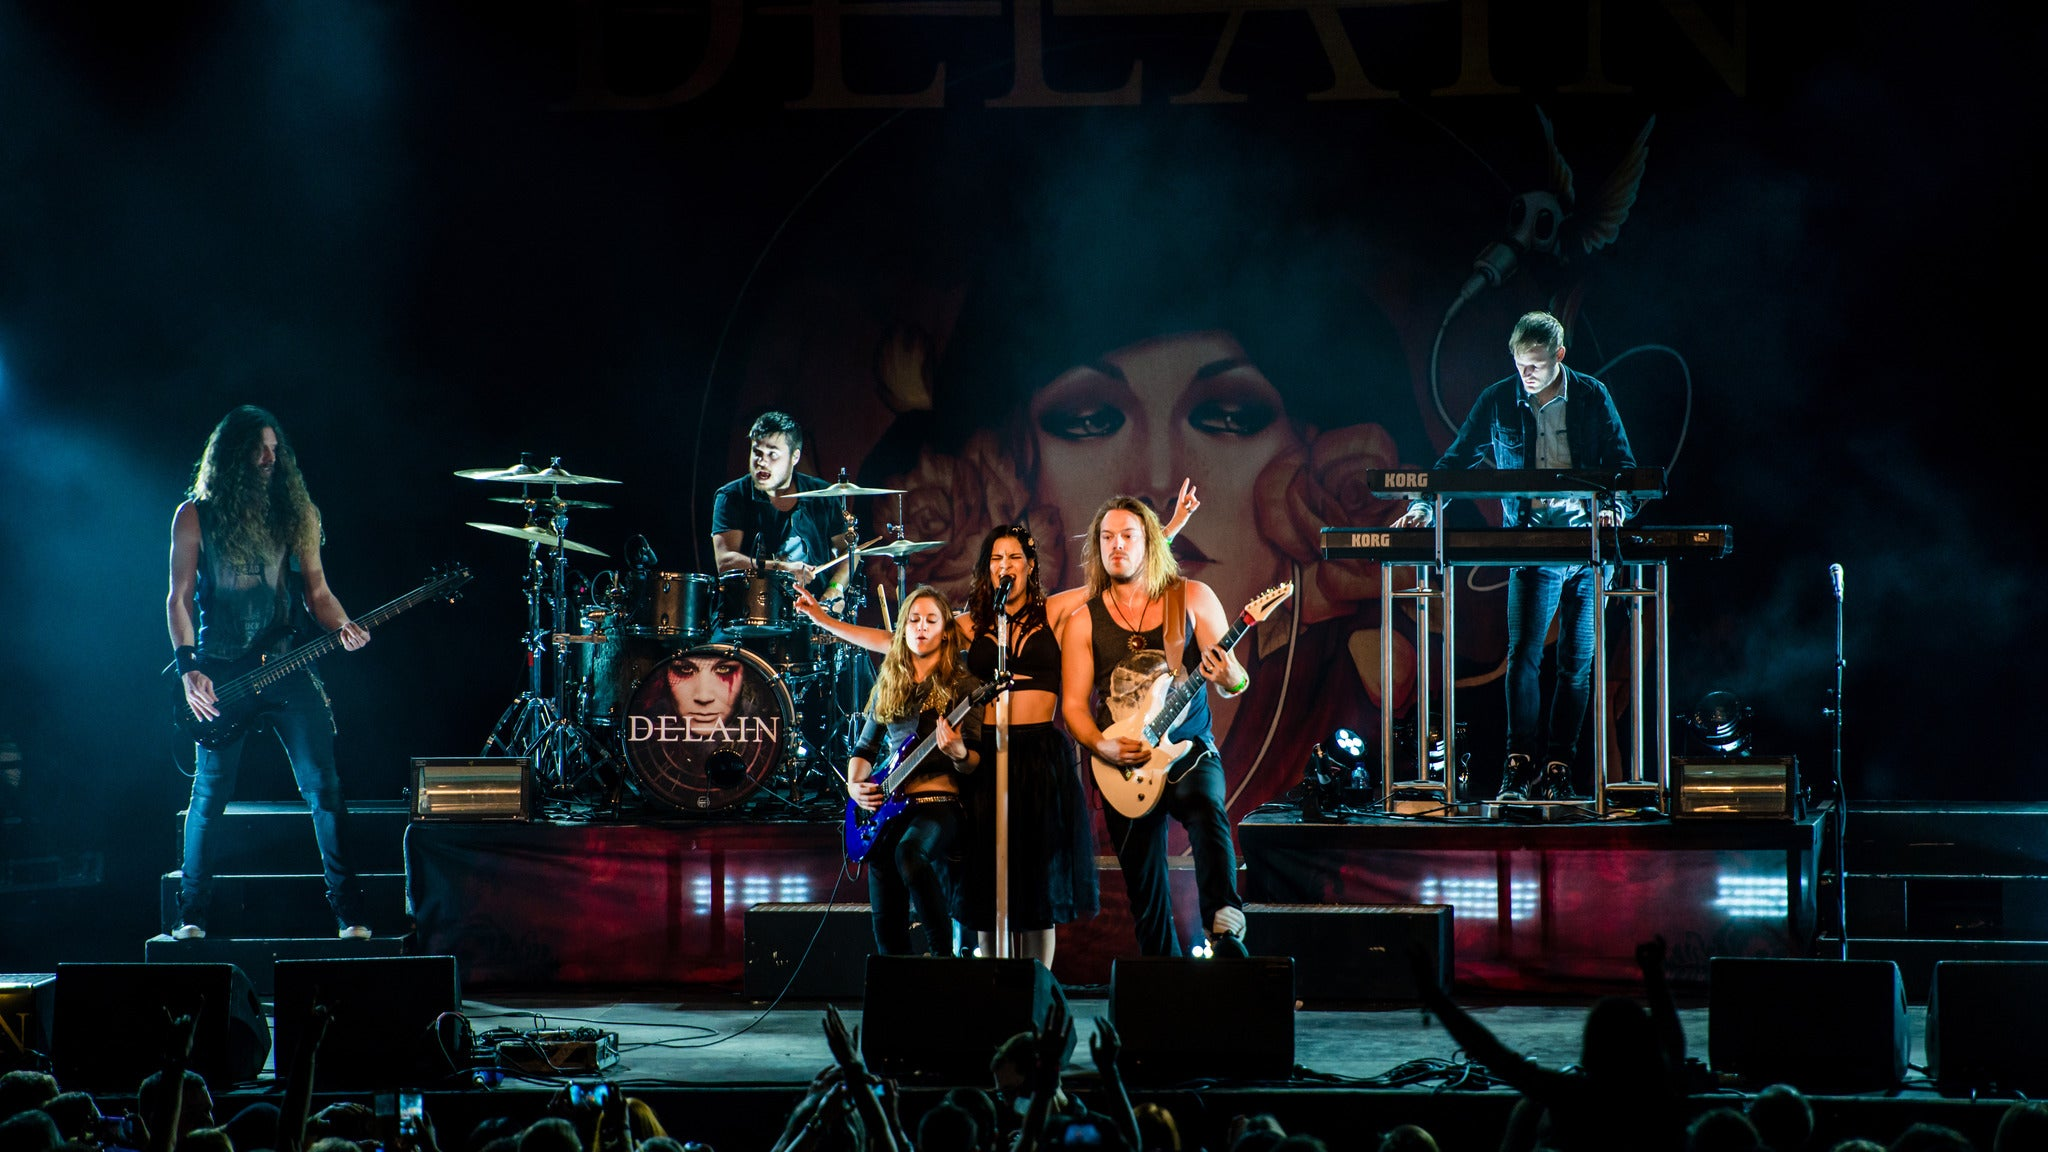 Delain w/ Amorphis at Gothic Theatre